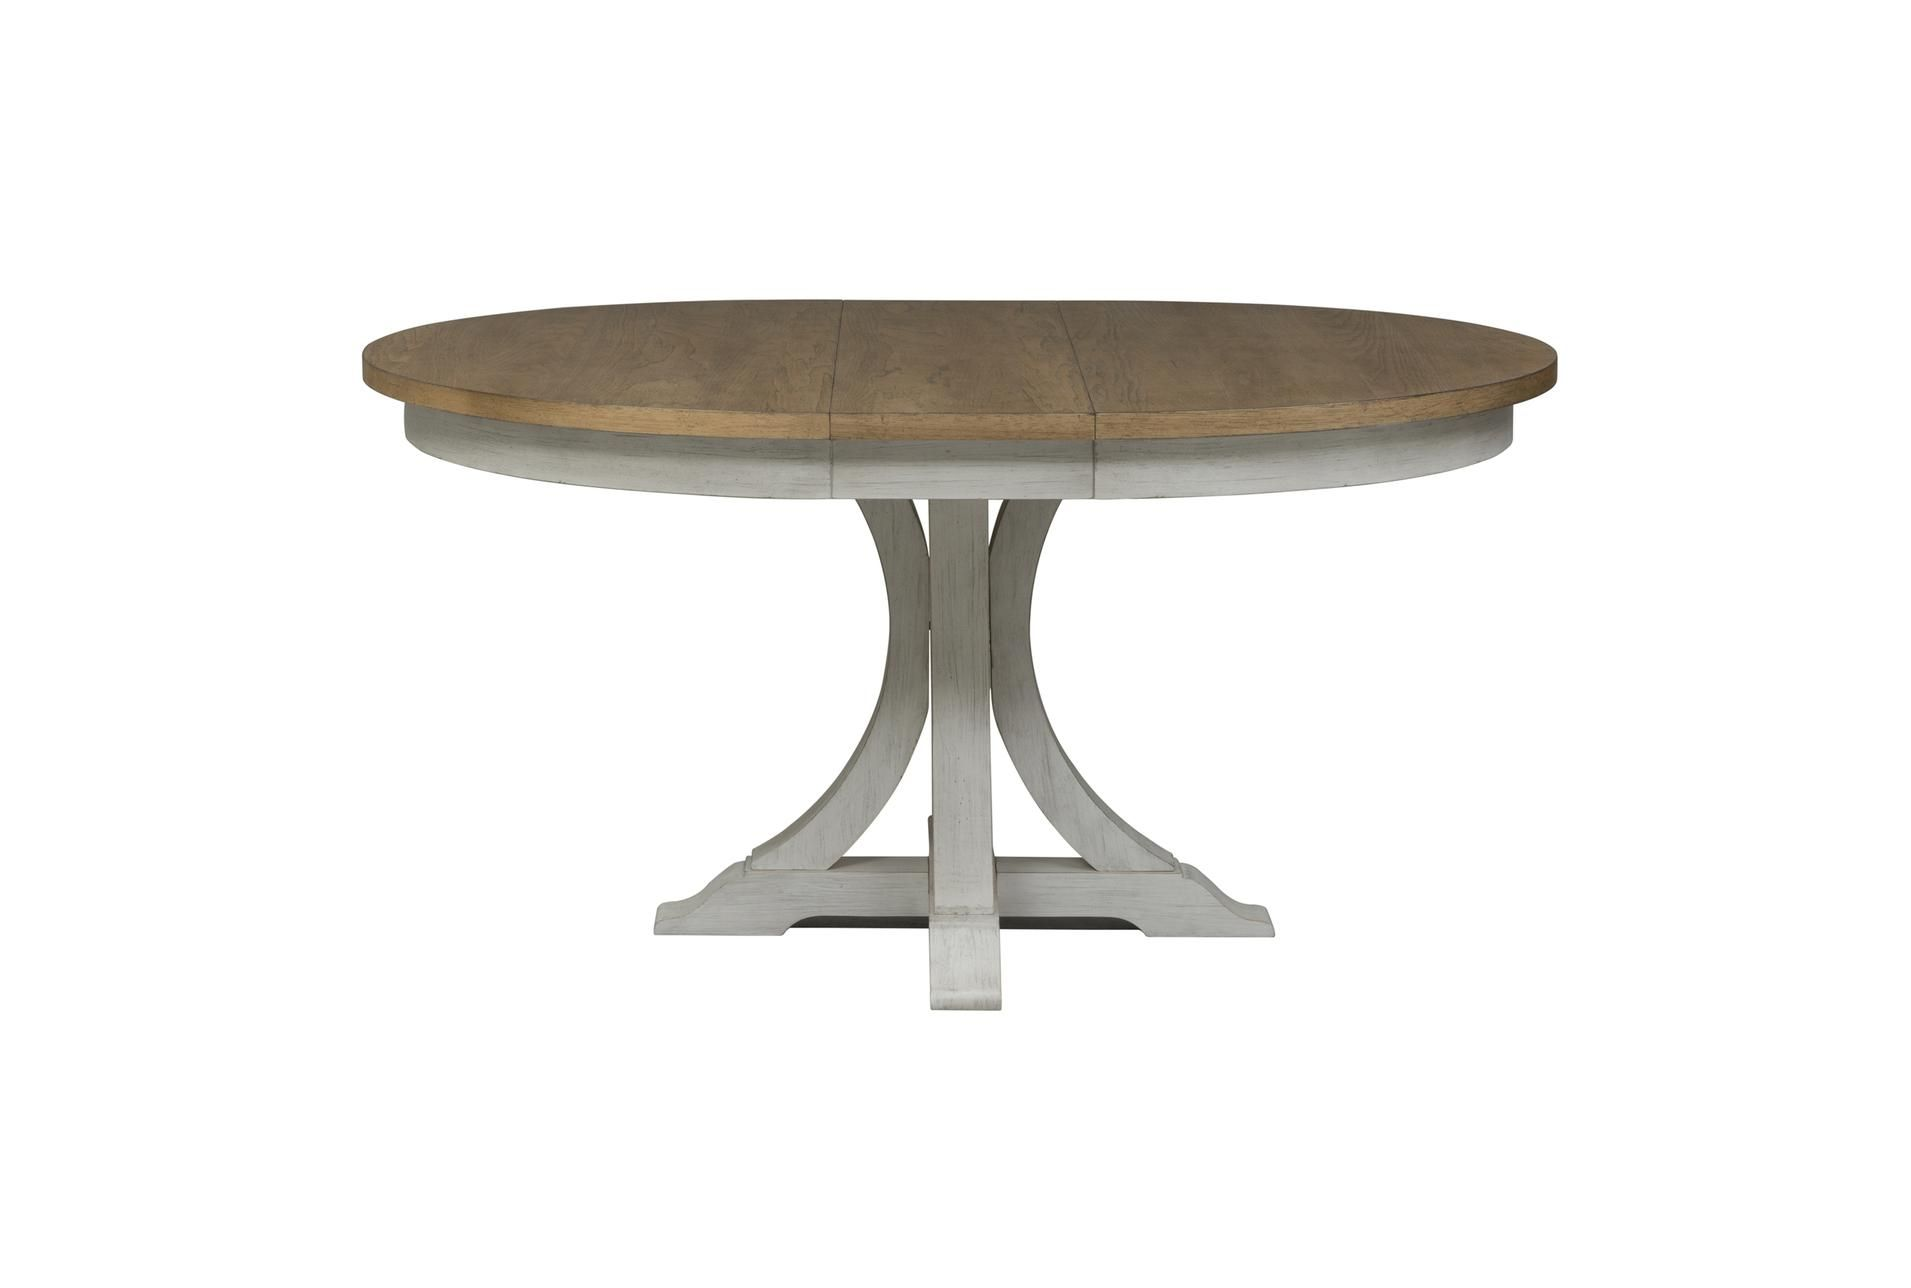 Duxbury Round Extension Dining Table In 2021 Dining Table Extension Dining Table Living Table Round dining table with extensions